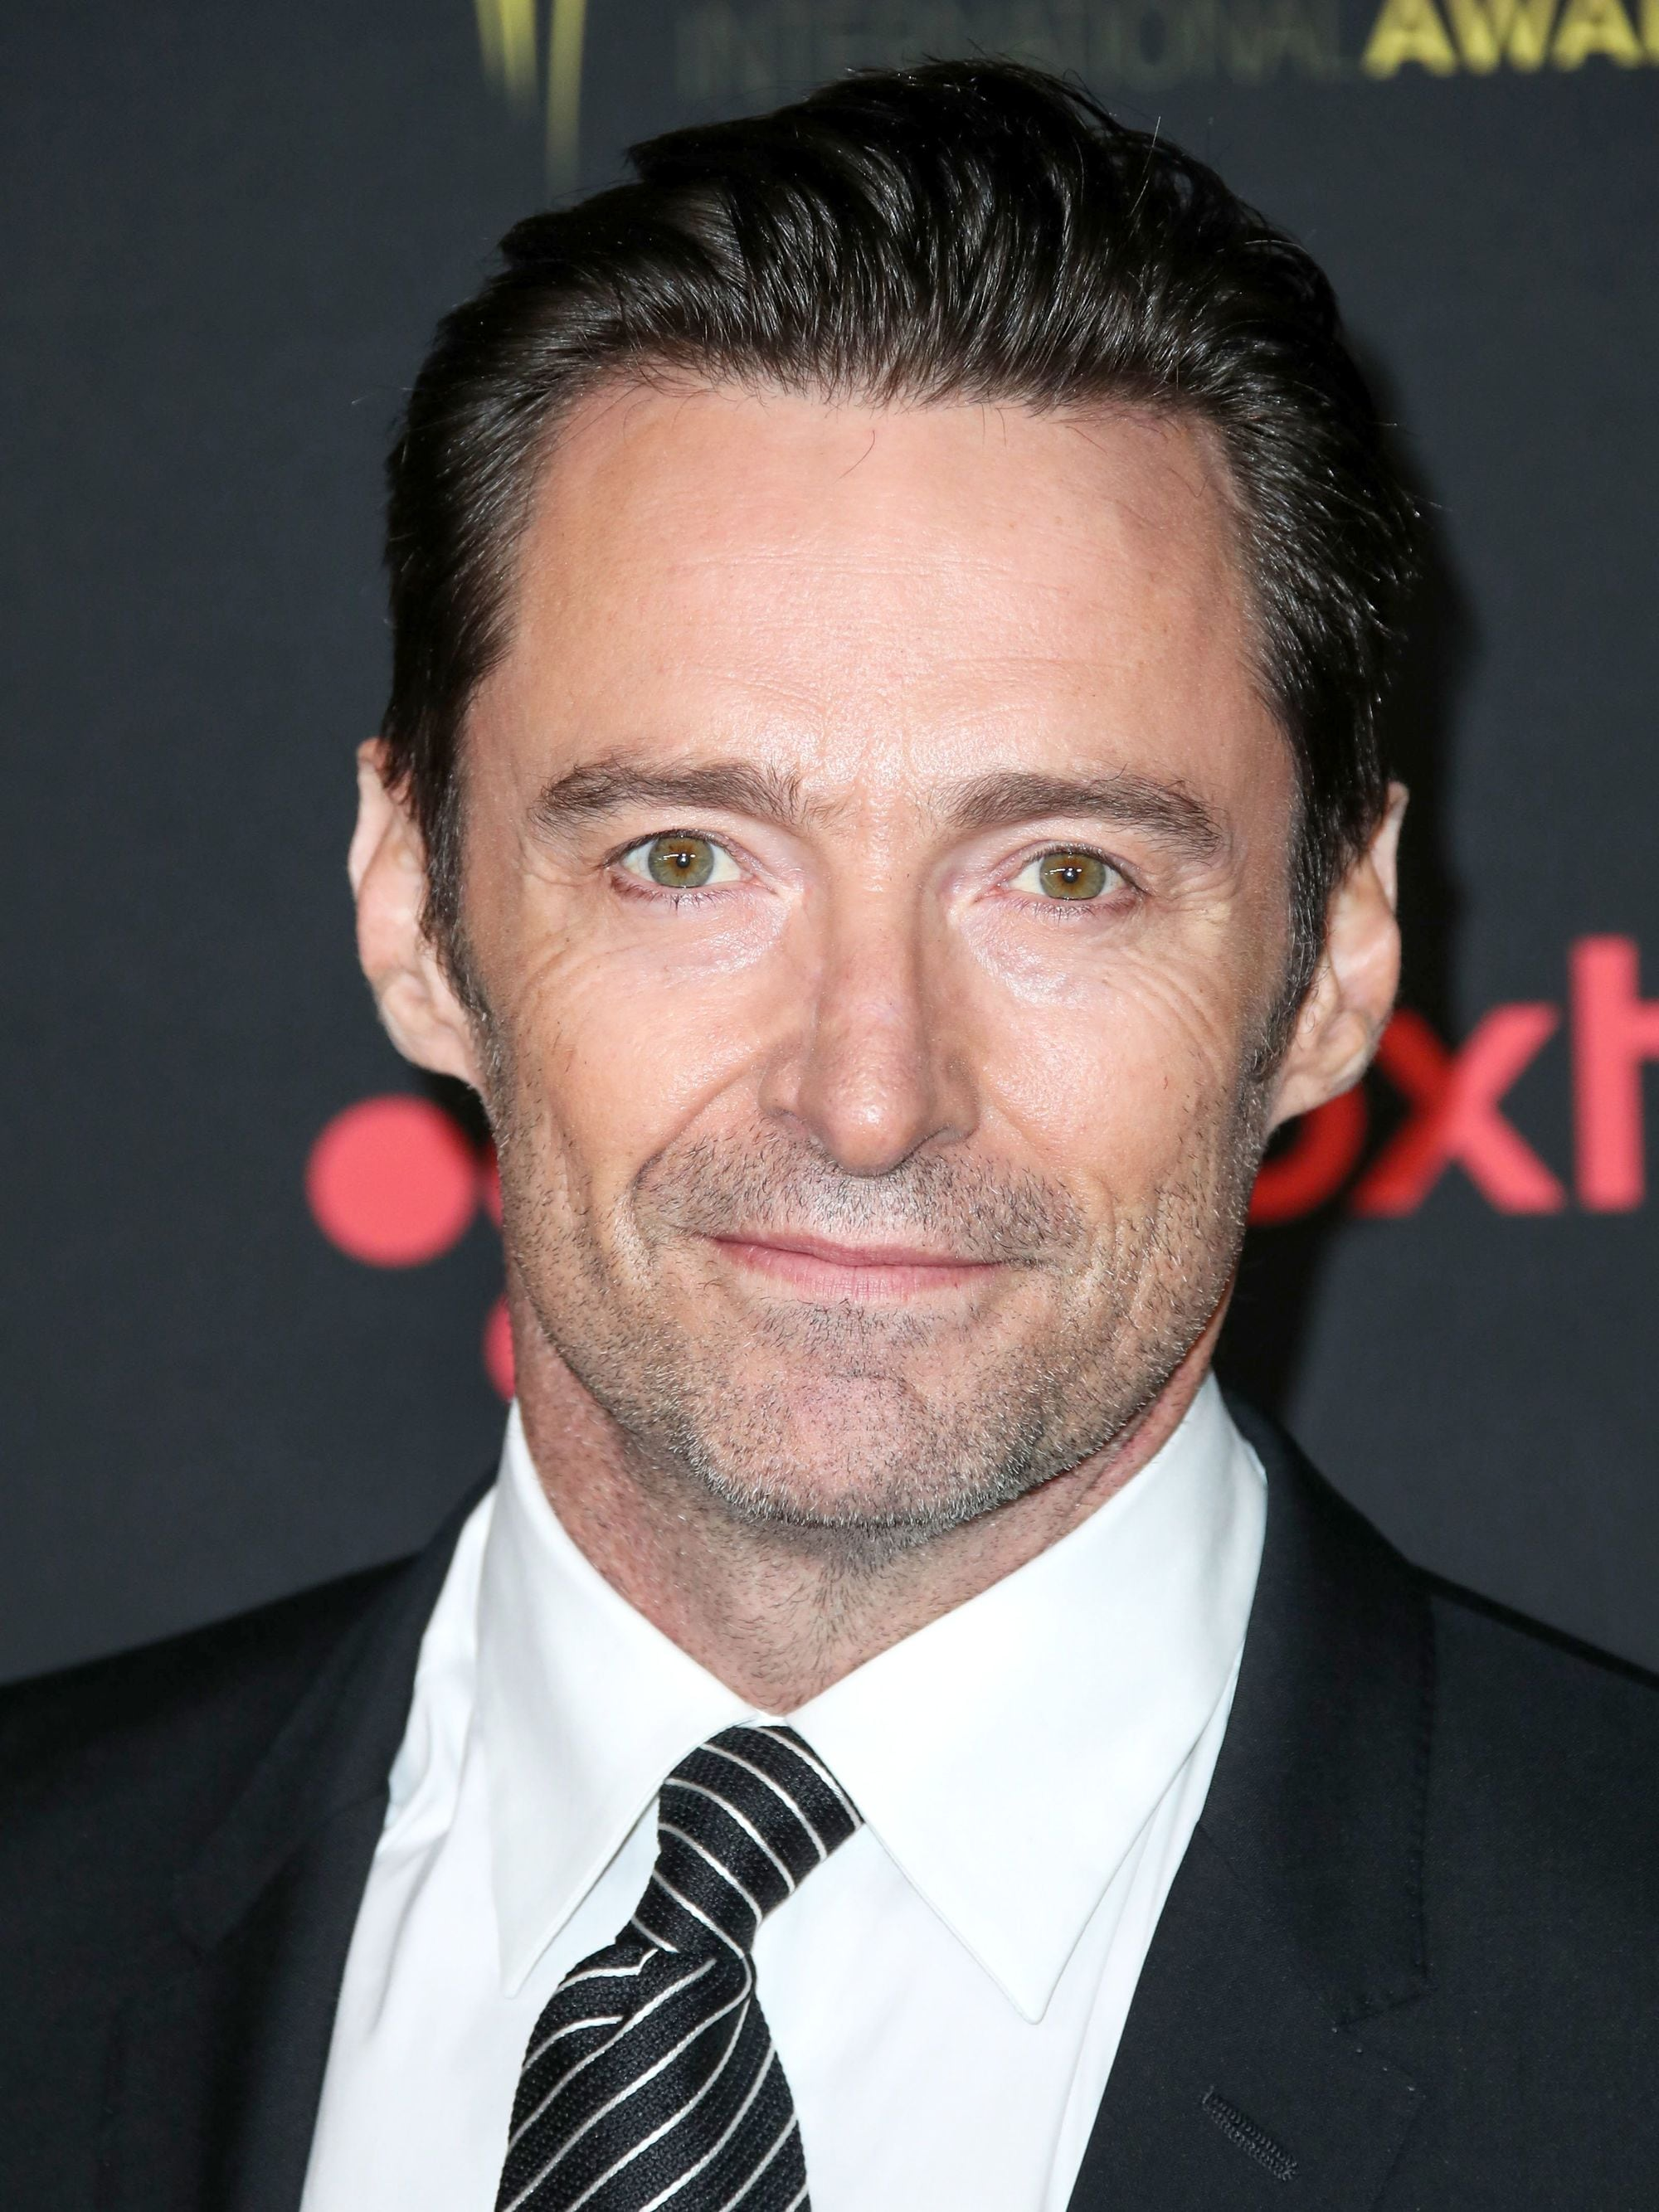 Hairstyles for men over 50: Hugh Jackman with brown swept back short hair wearing a smart suit on the red carpet.